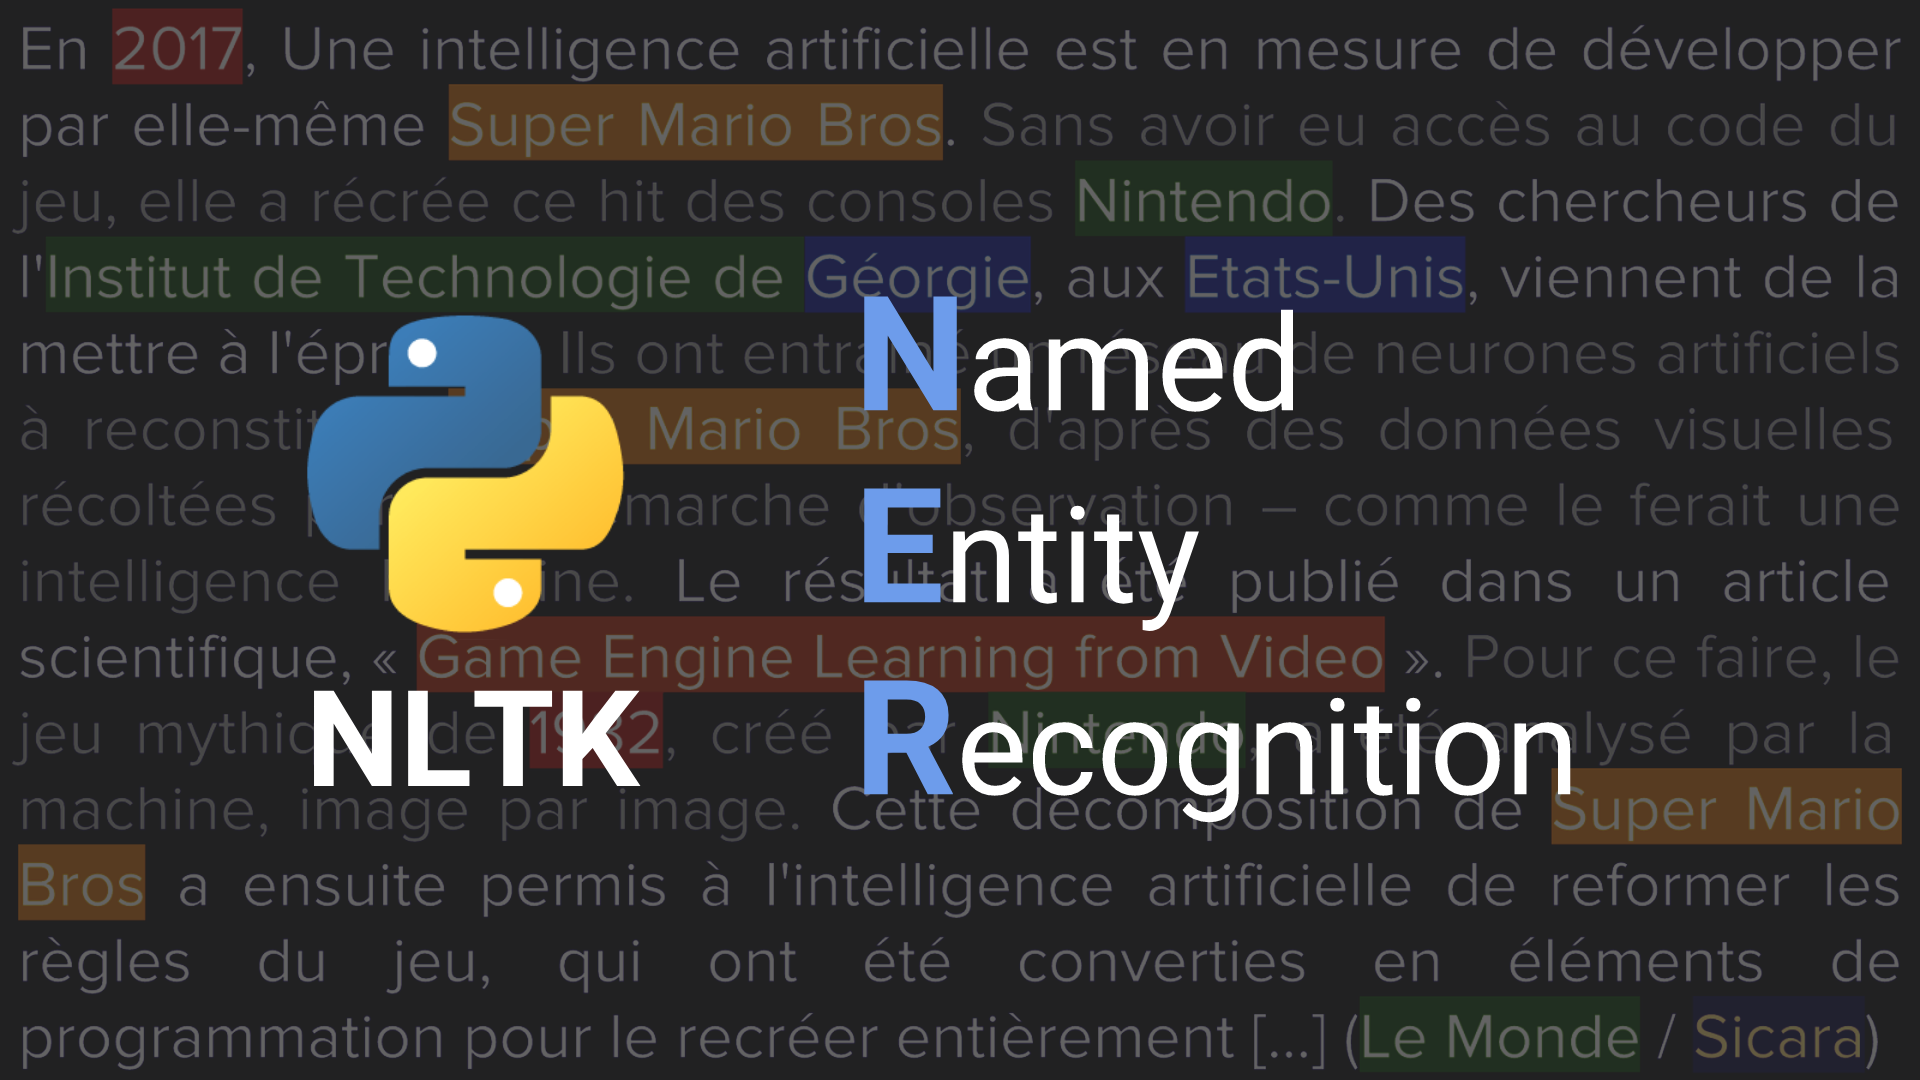 Python: How to Train your Own Model with NLTK and Stanford NER